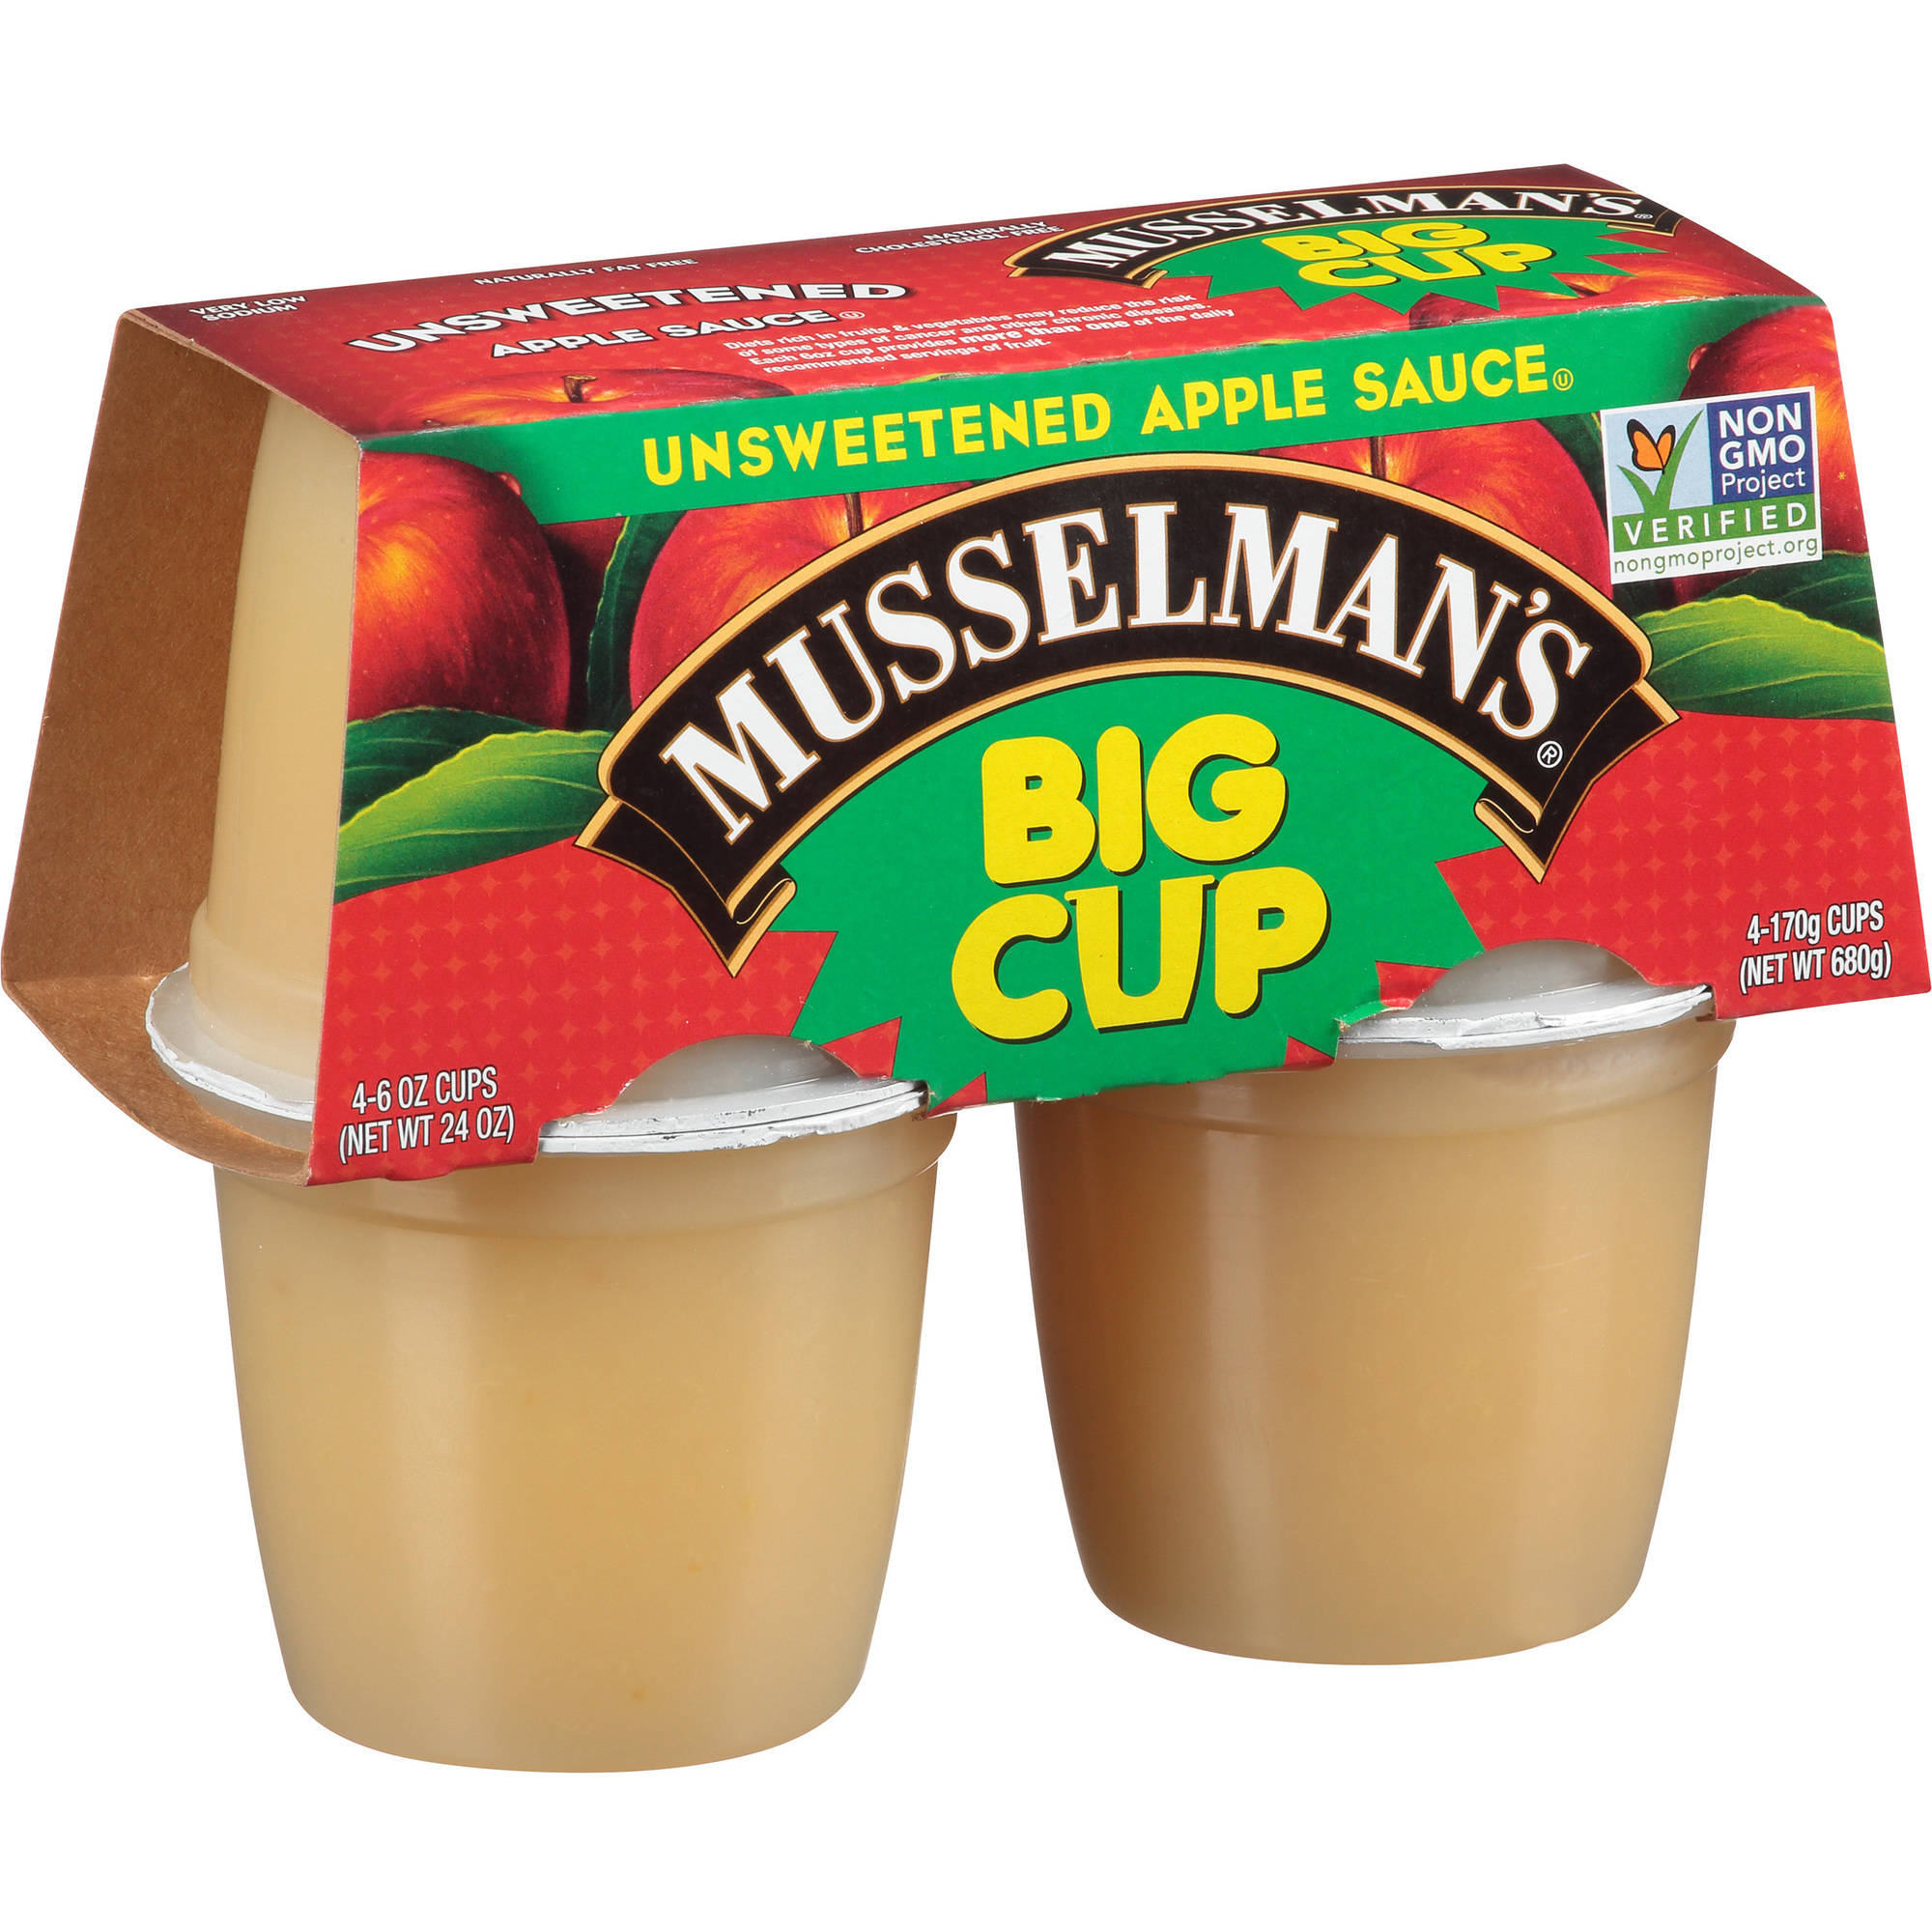 (2 Pack) Musselman's® Big Cup Unsweetened Apple Sauce 4-6 oz. Cups